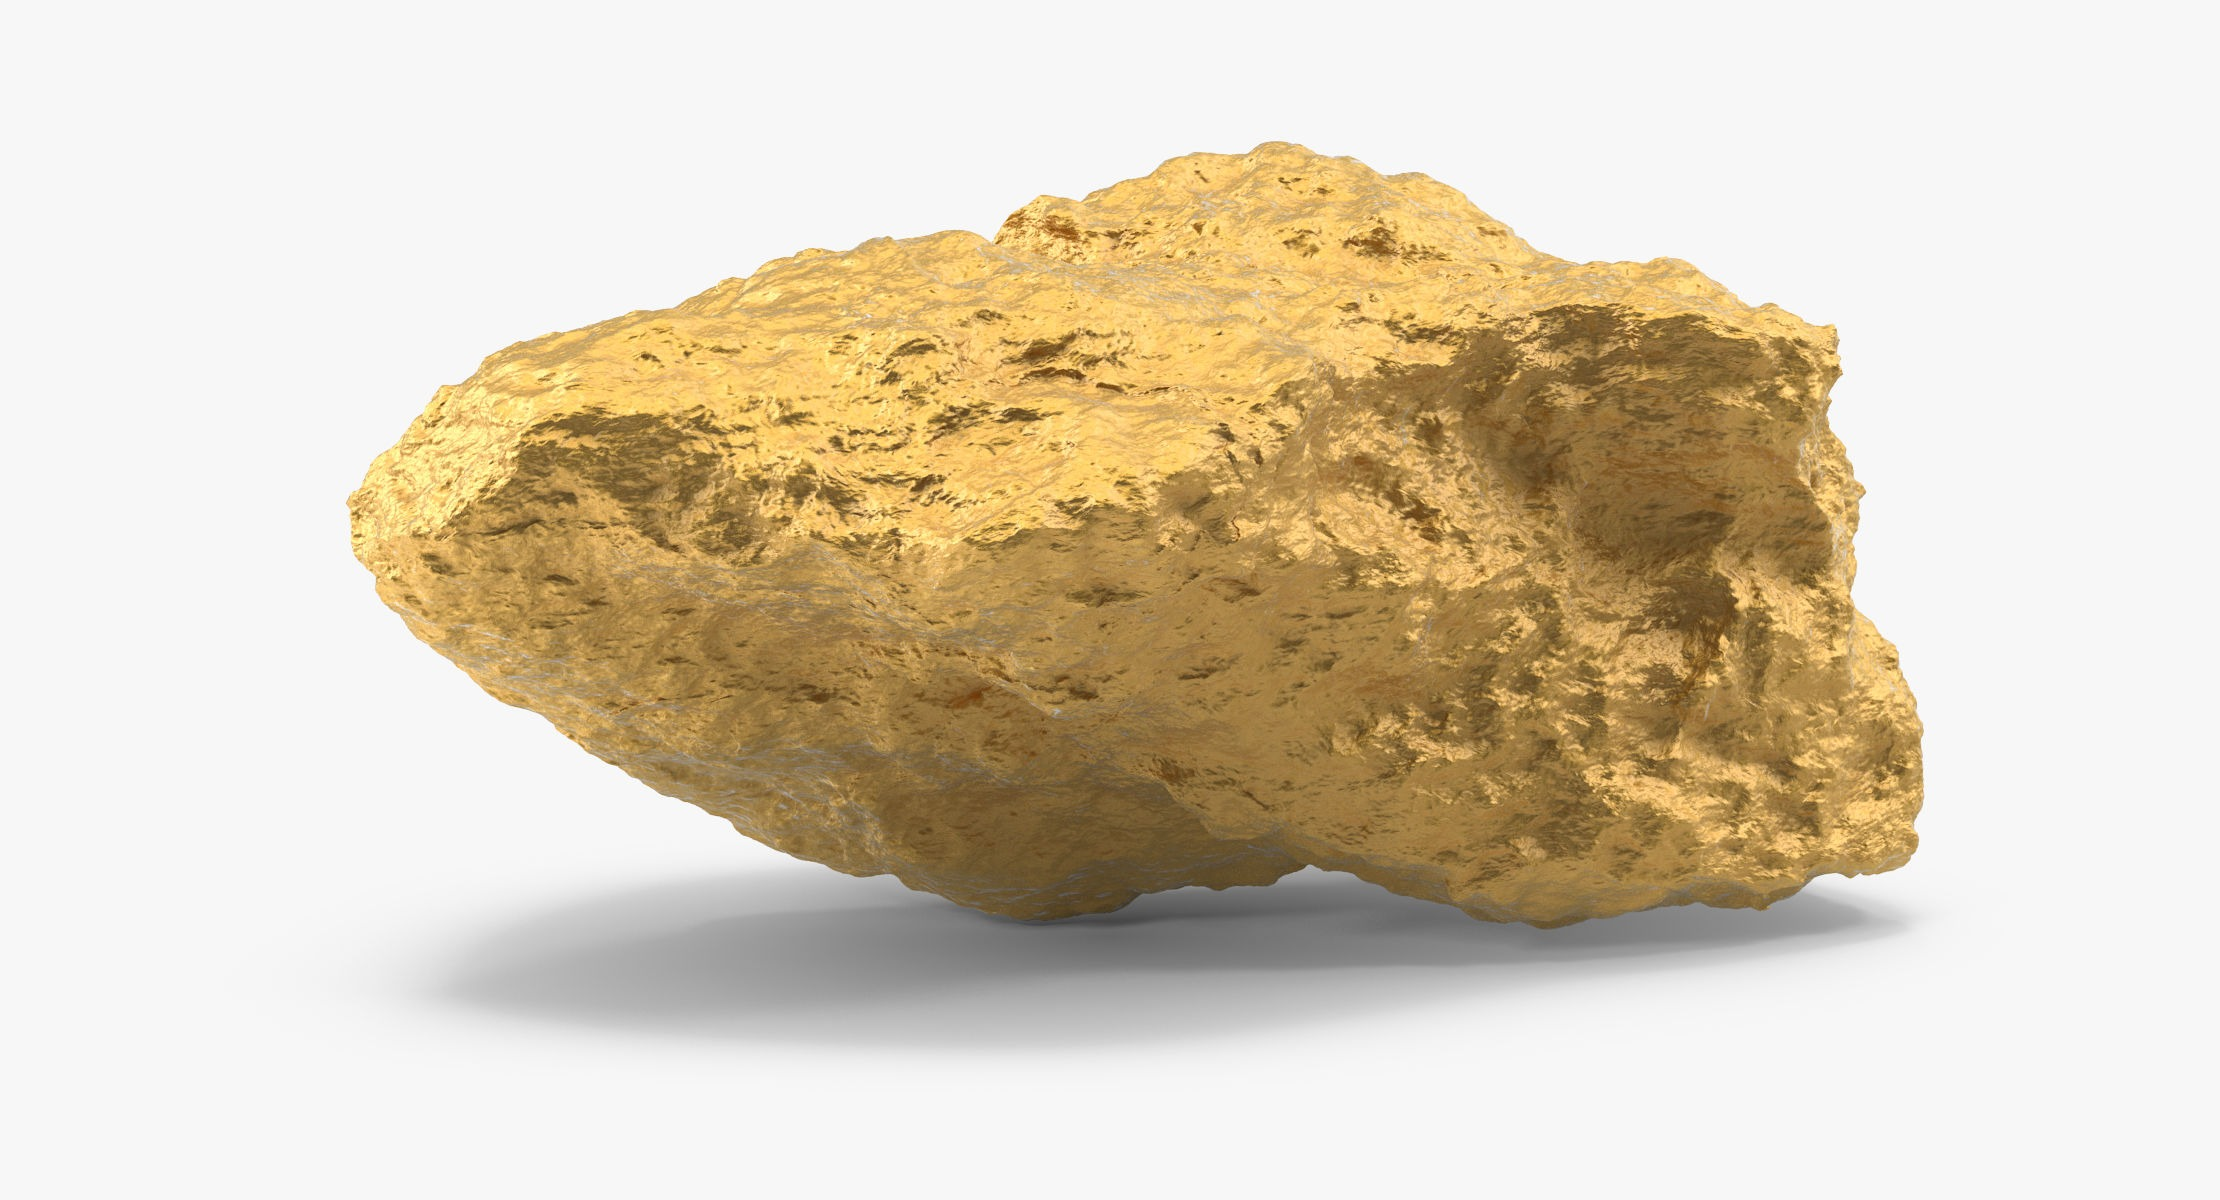 Gold Nugget 01 - reel 1